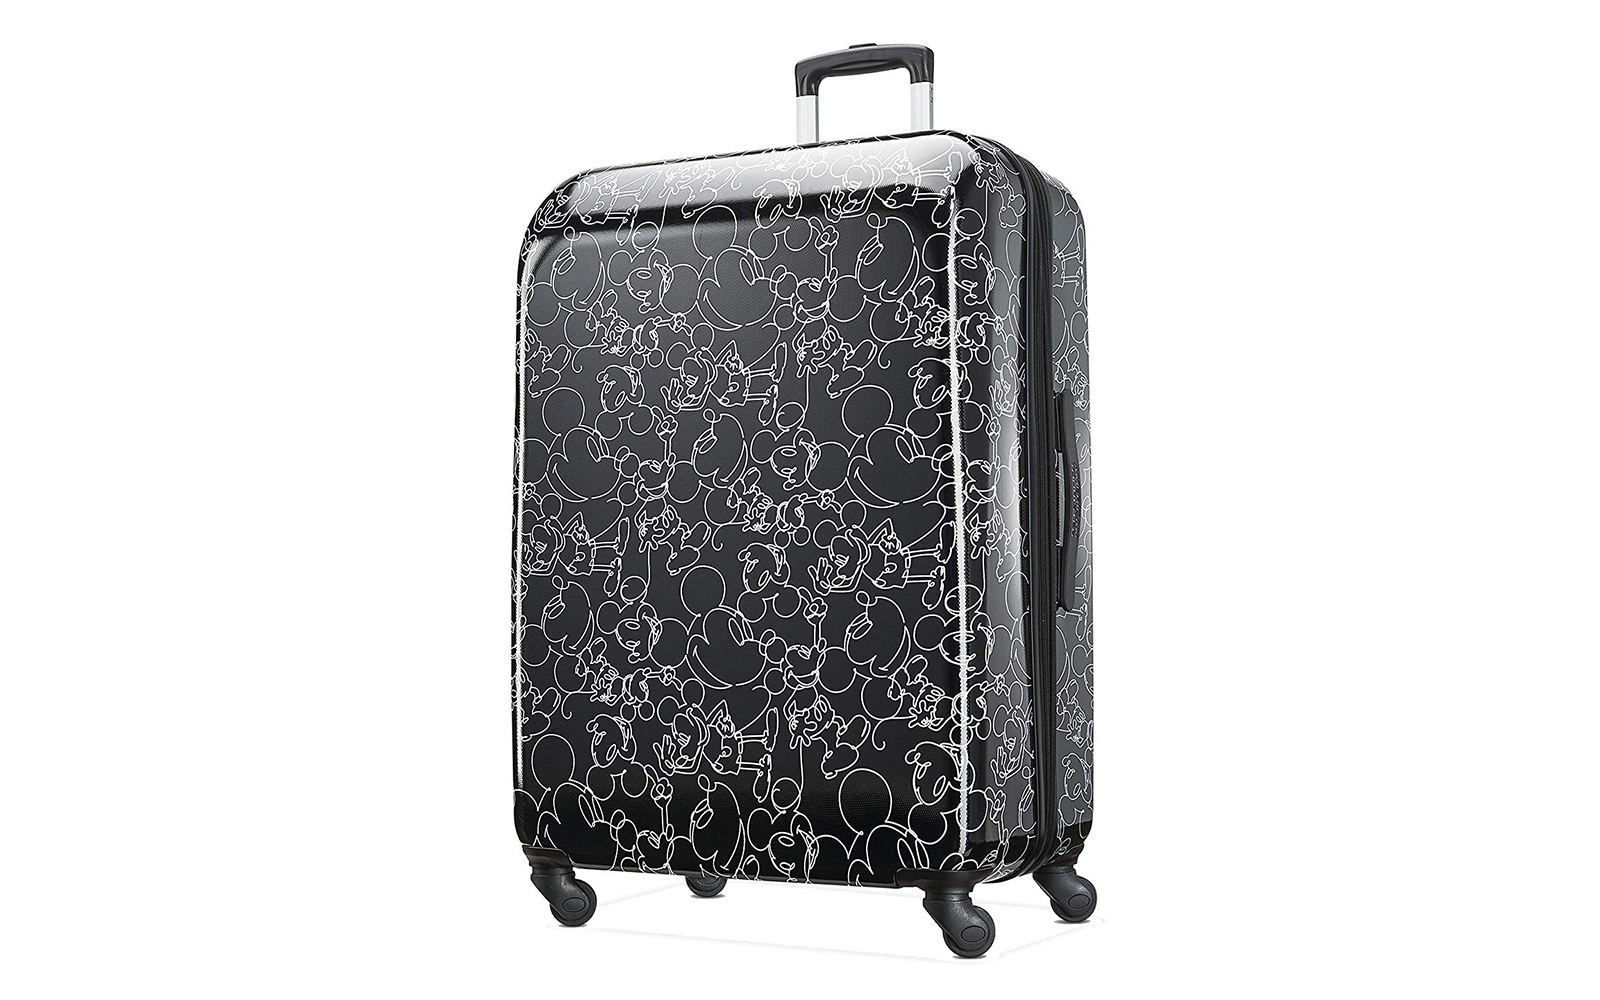 f884b882f8f 20 of the Most Magical Travel Essentials Disney Fans Need for Their ...